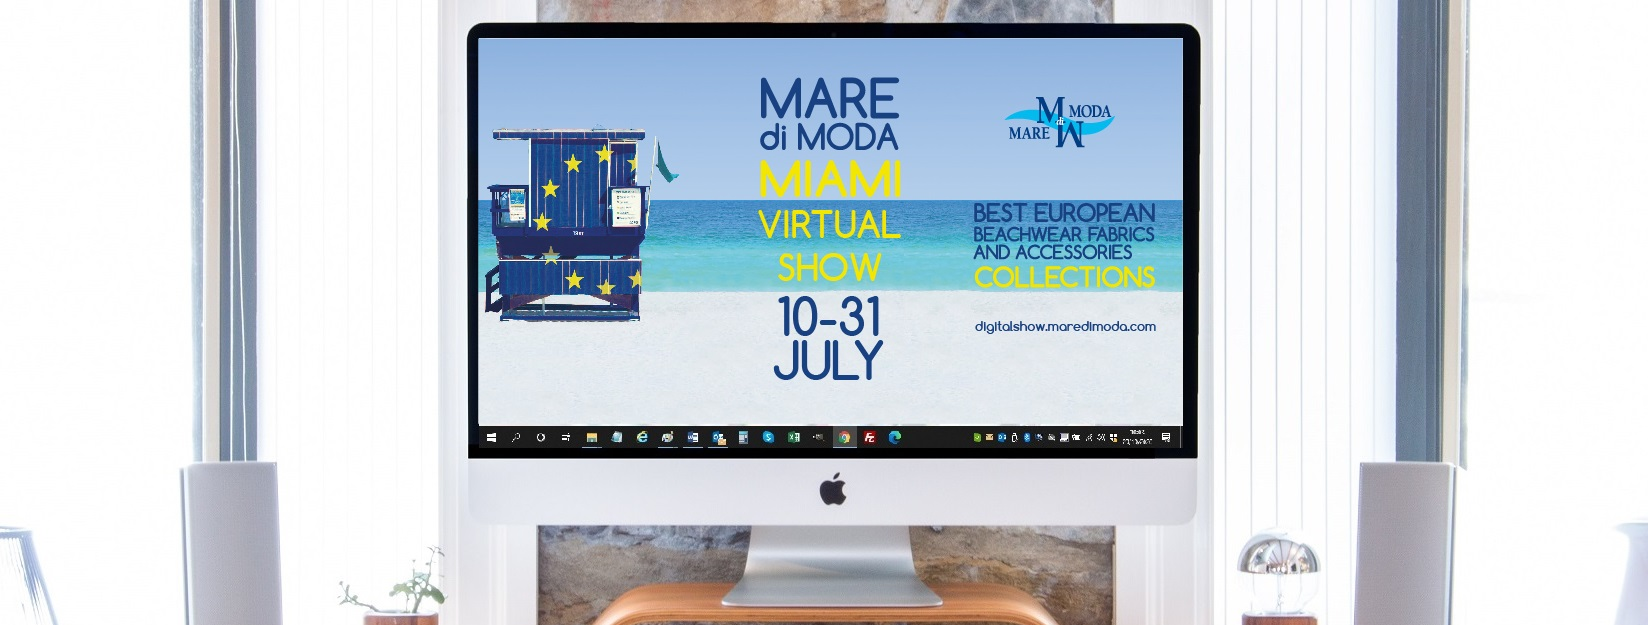 MarediModa Miami Digital Show on the stage of the Swim Week starring the excellence of the European textile